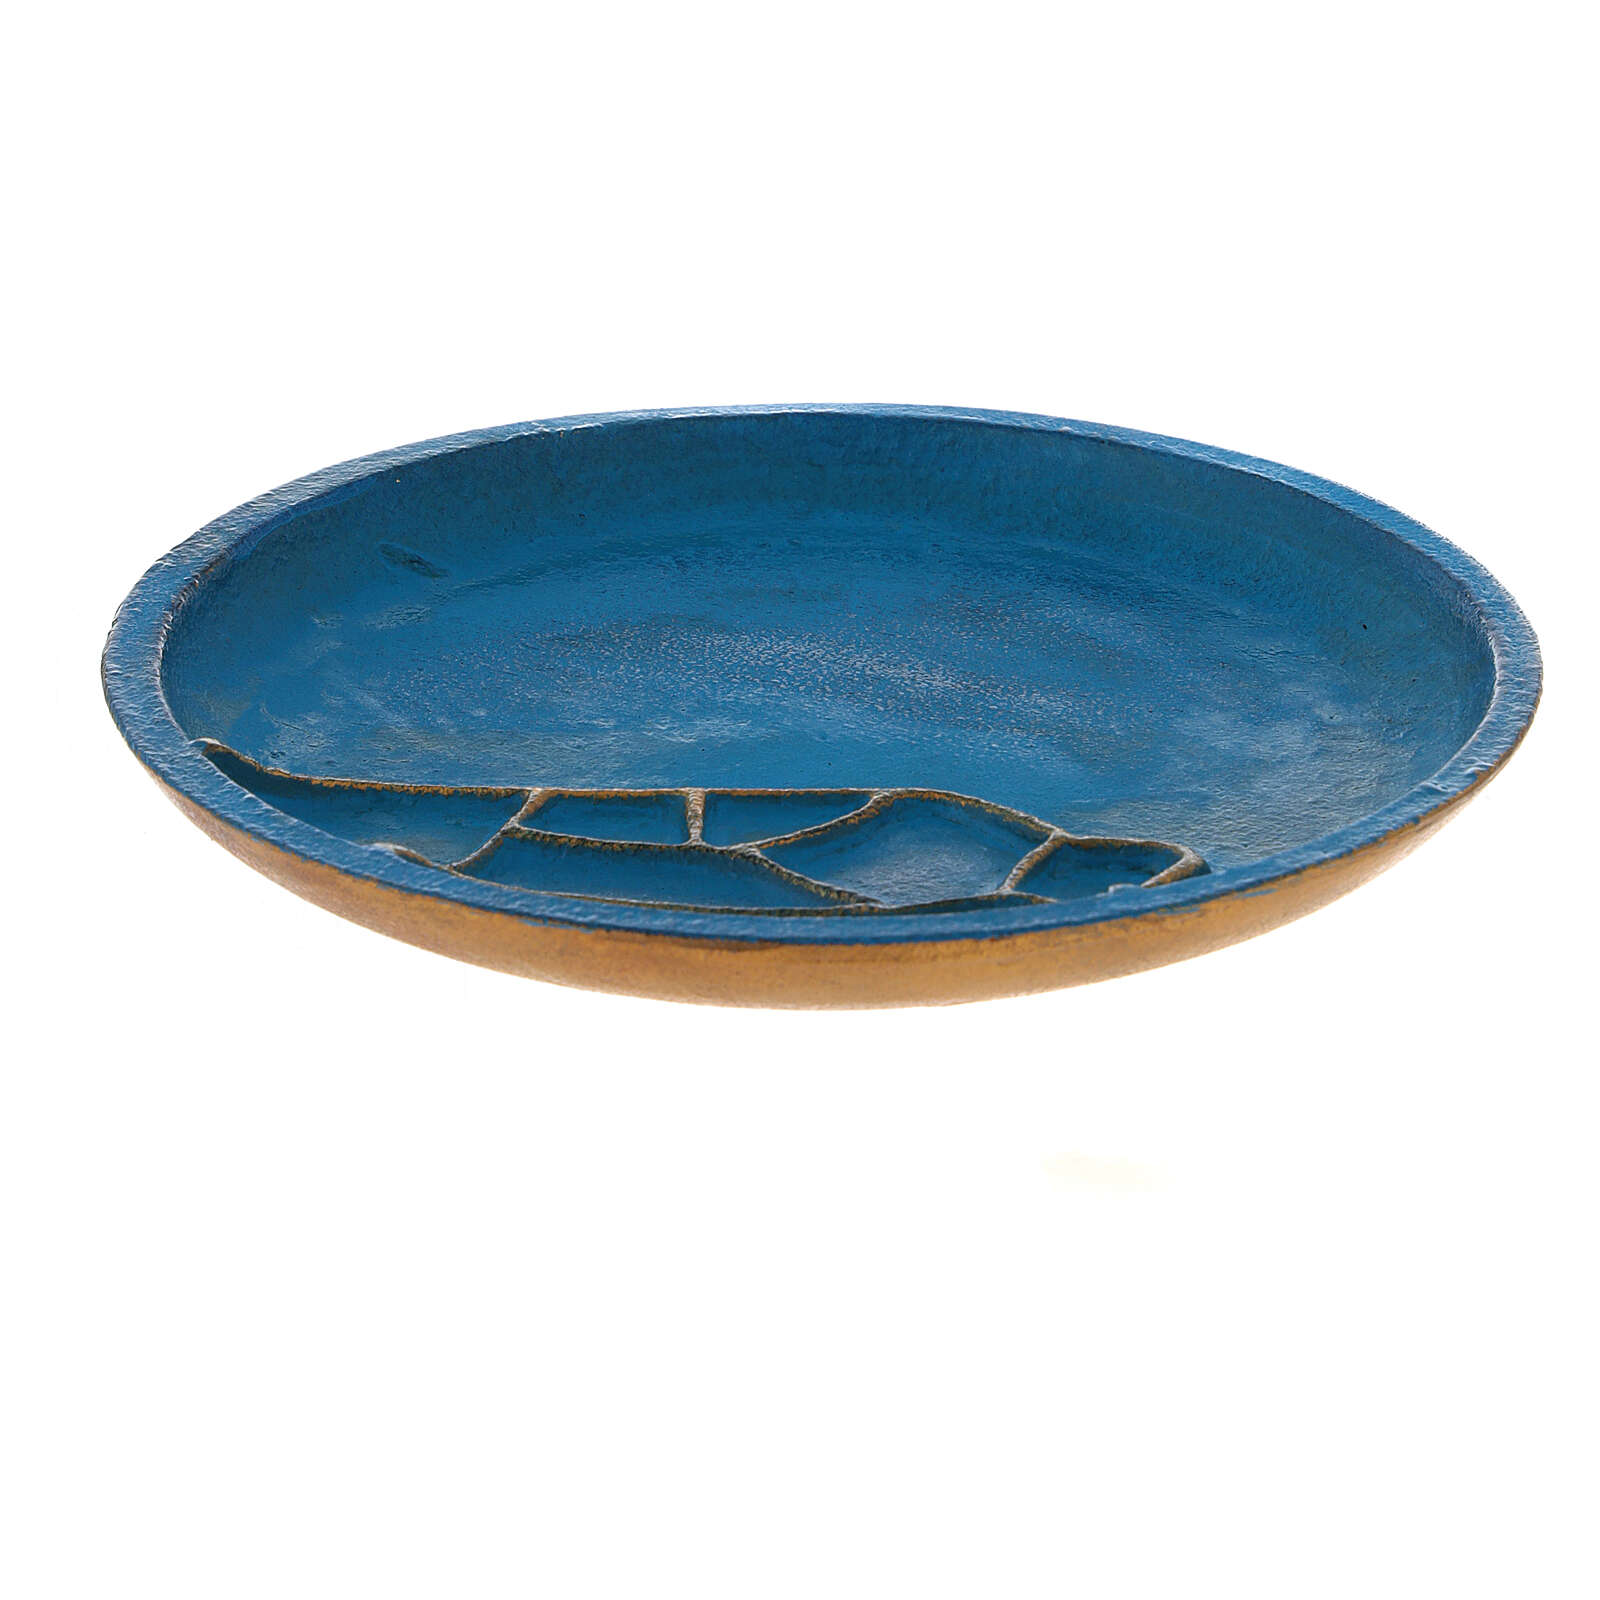 Turquoise candle holder plate aluminium 5 1/2 in 3